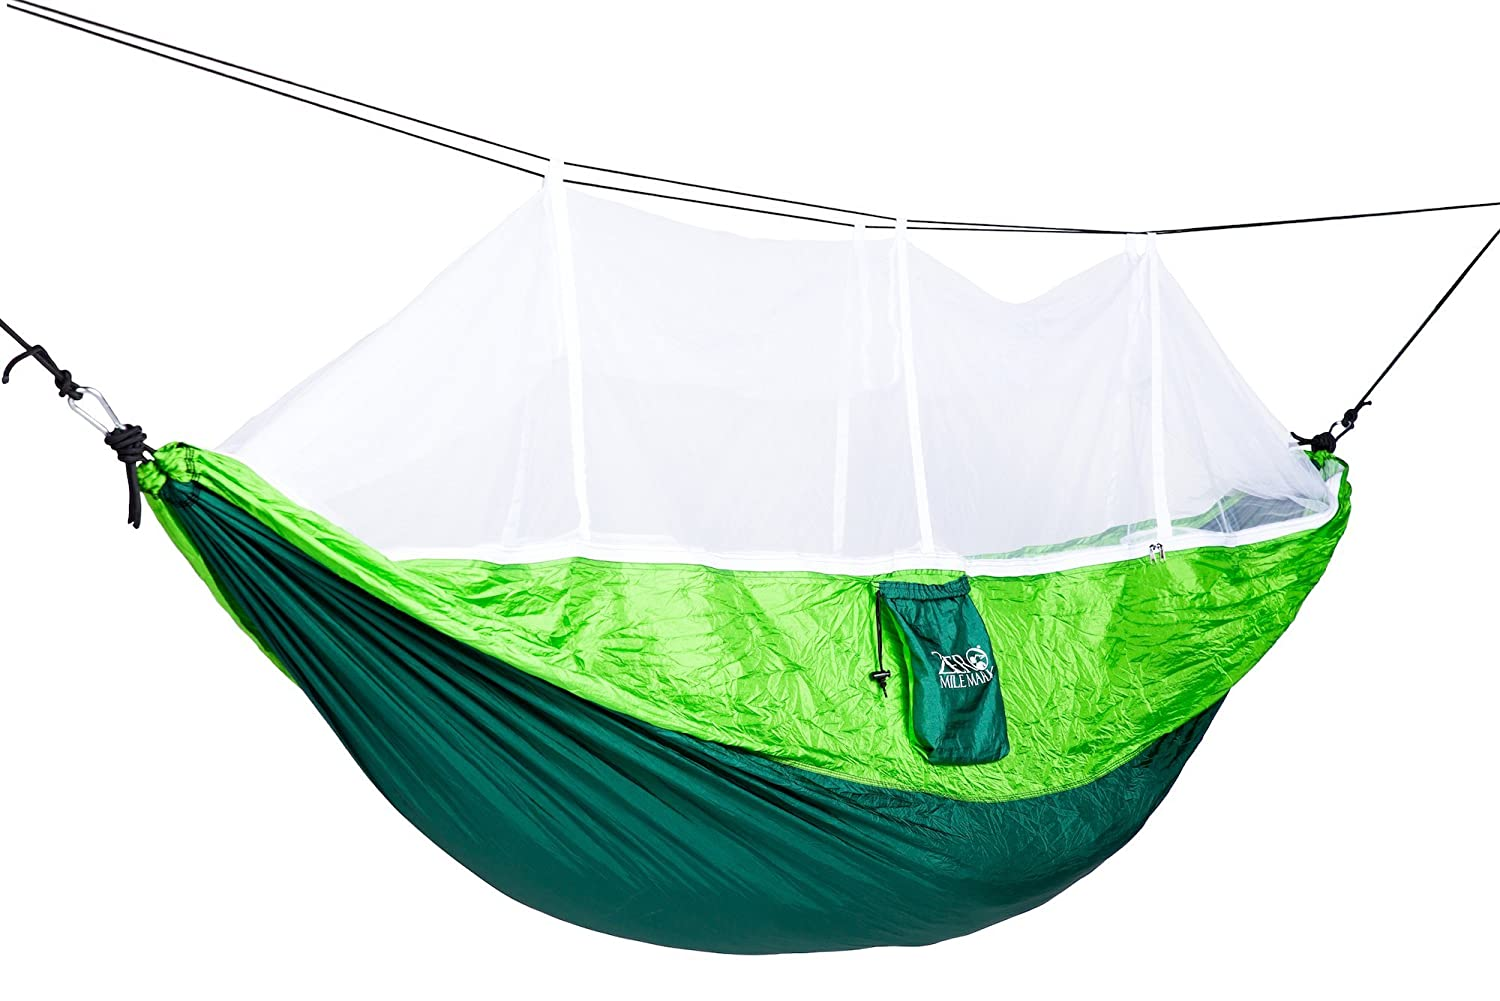 Strong Mesh Net Nylon Rope Outdoor Travel Camping Hammock Hanging Sleeping Bed Relax After A Hard Day. Camp Sleeping Gear